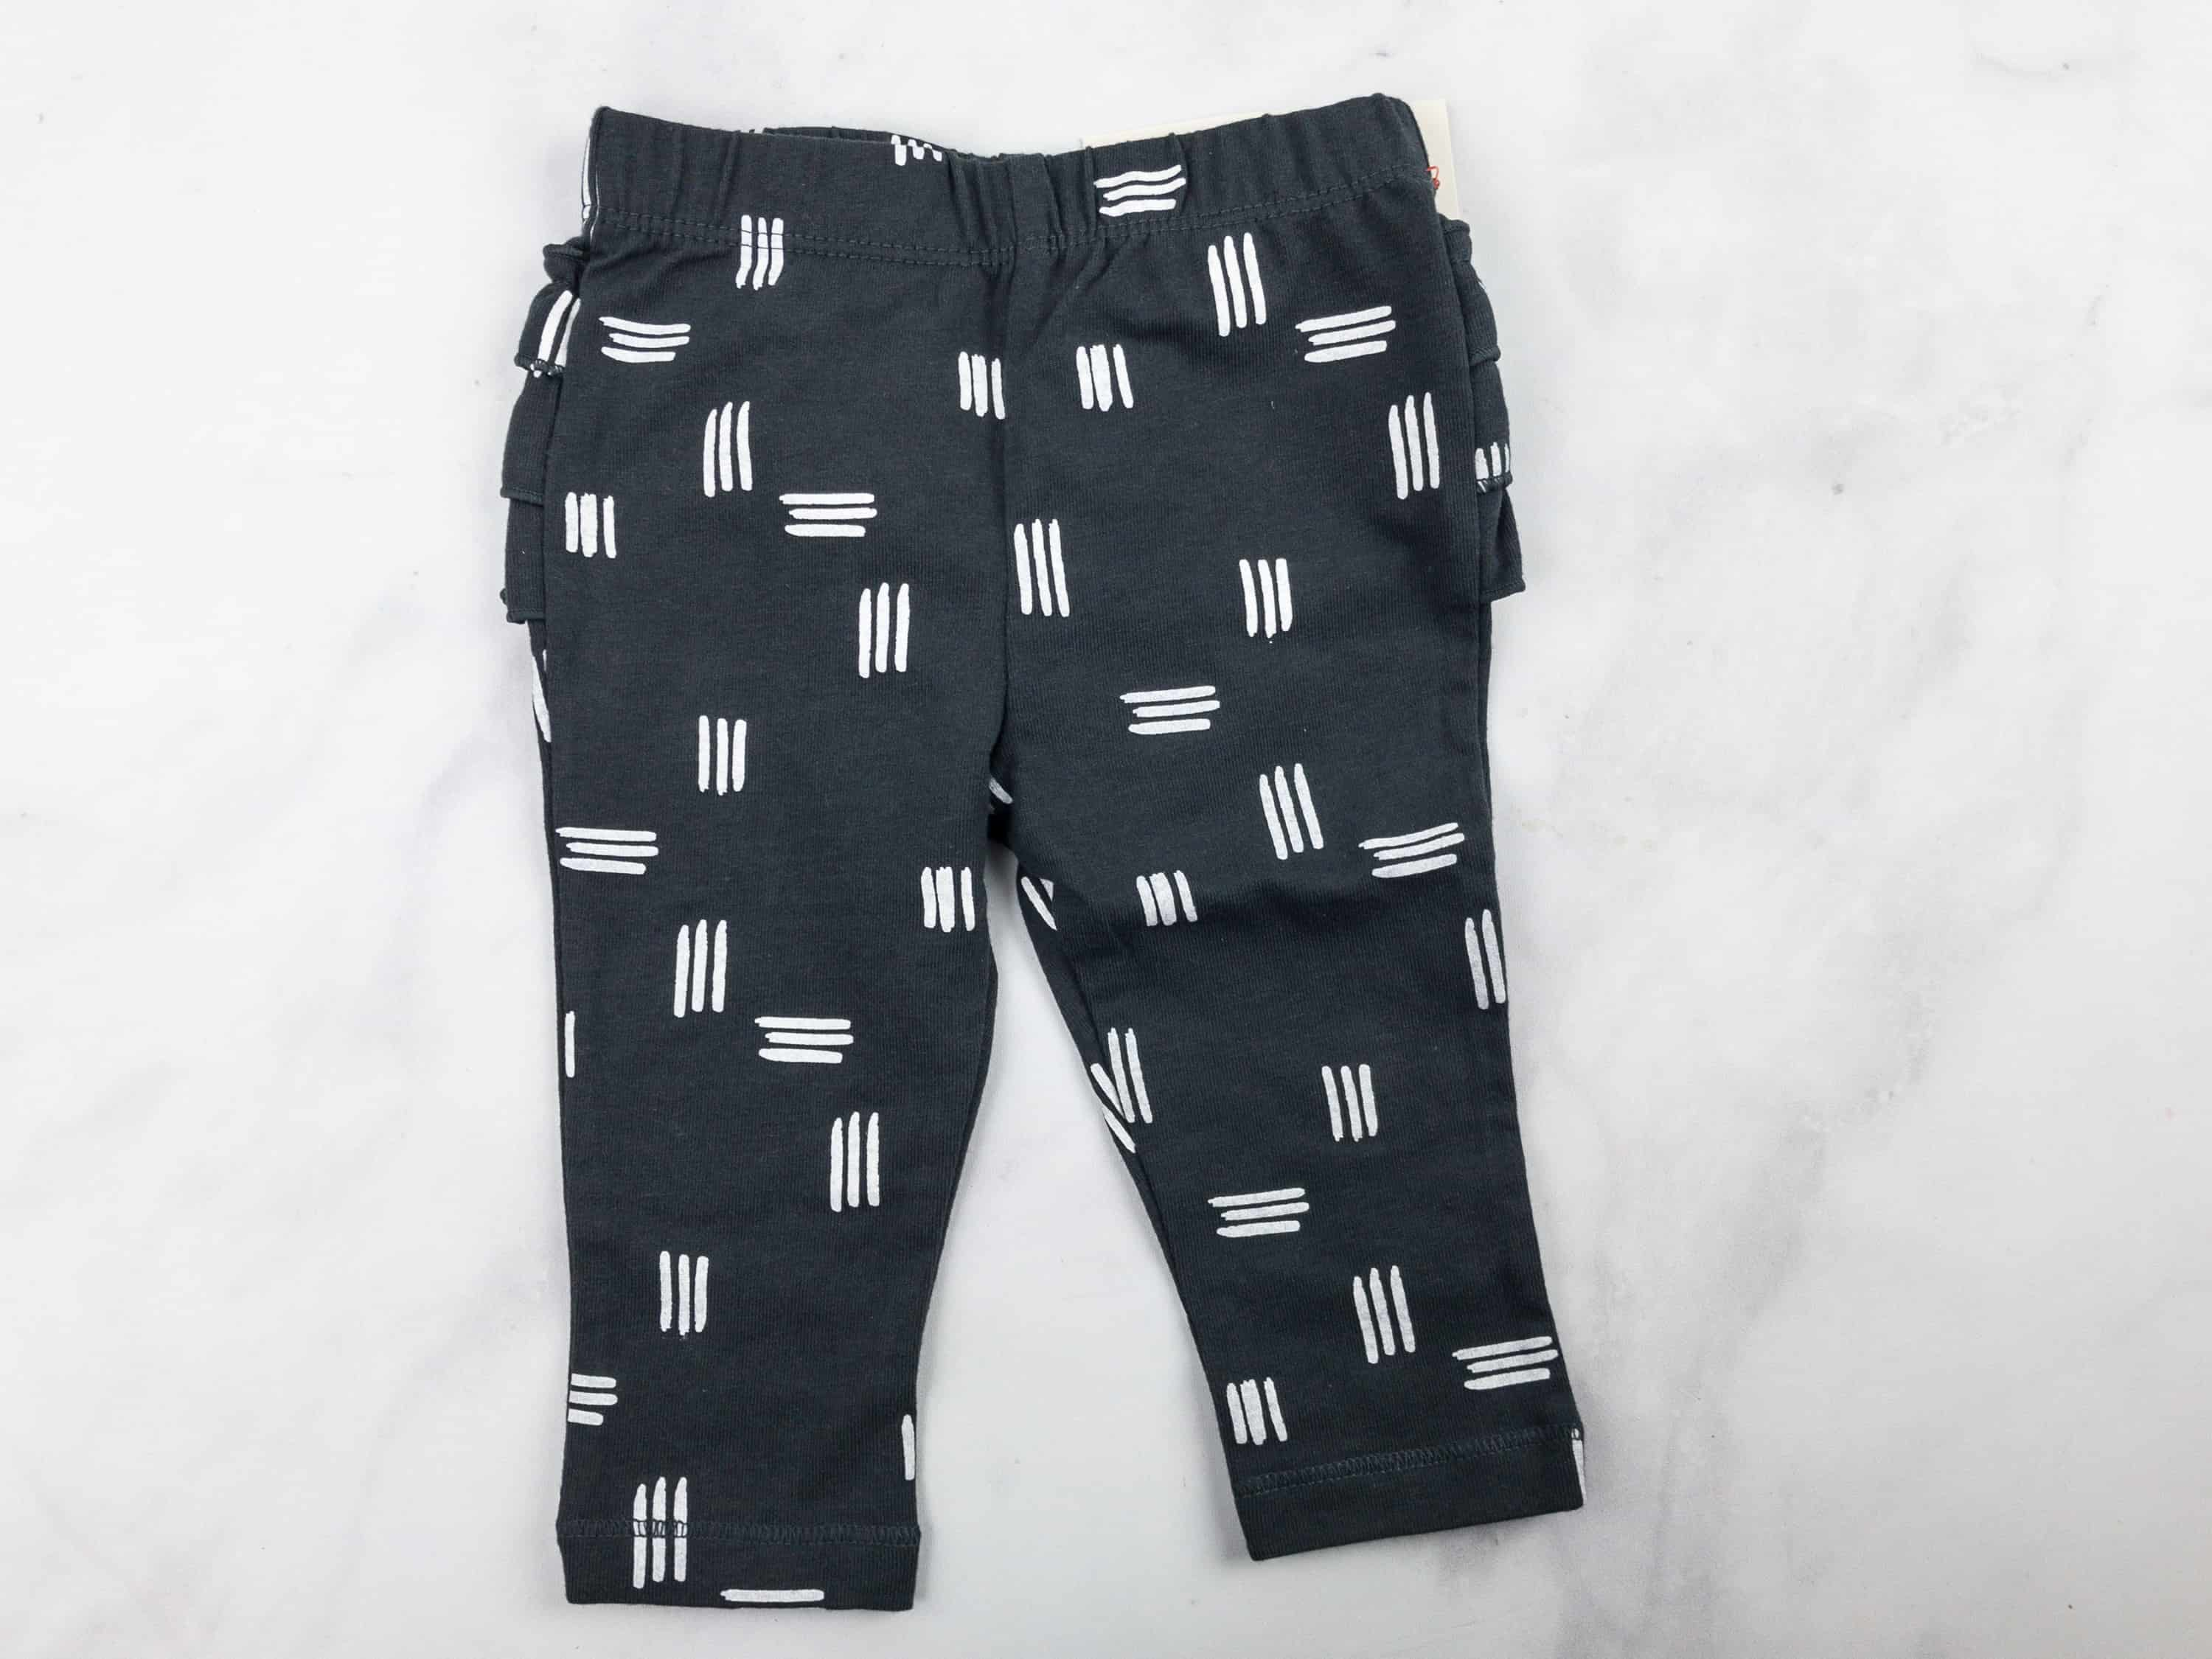 b4d646c122a3 Cat   Jack Baby Girls  Leggings with Shapes Print and Bottom Ruffles (est   6.99) These black leggings are decorated with white stripes and accented  with ...